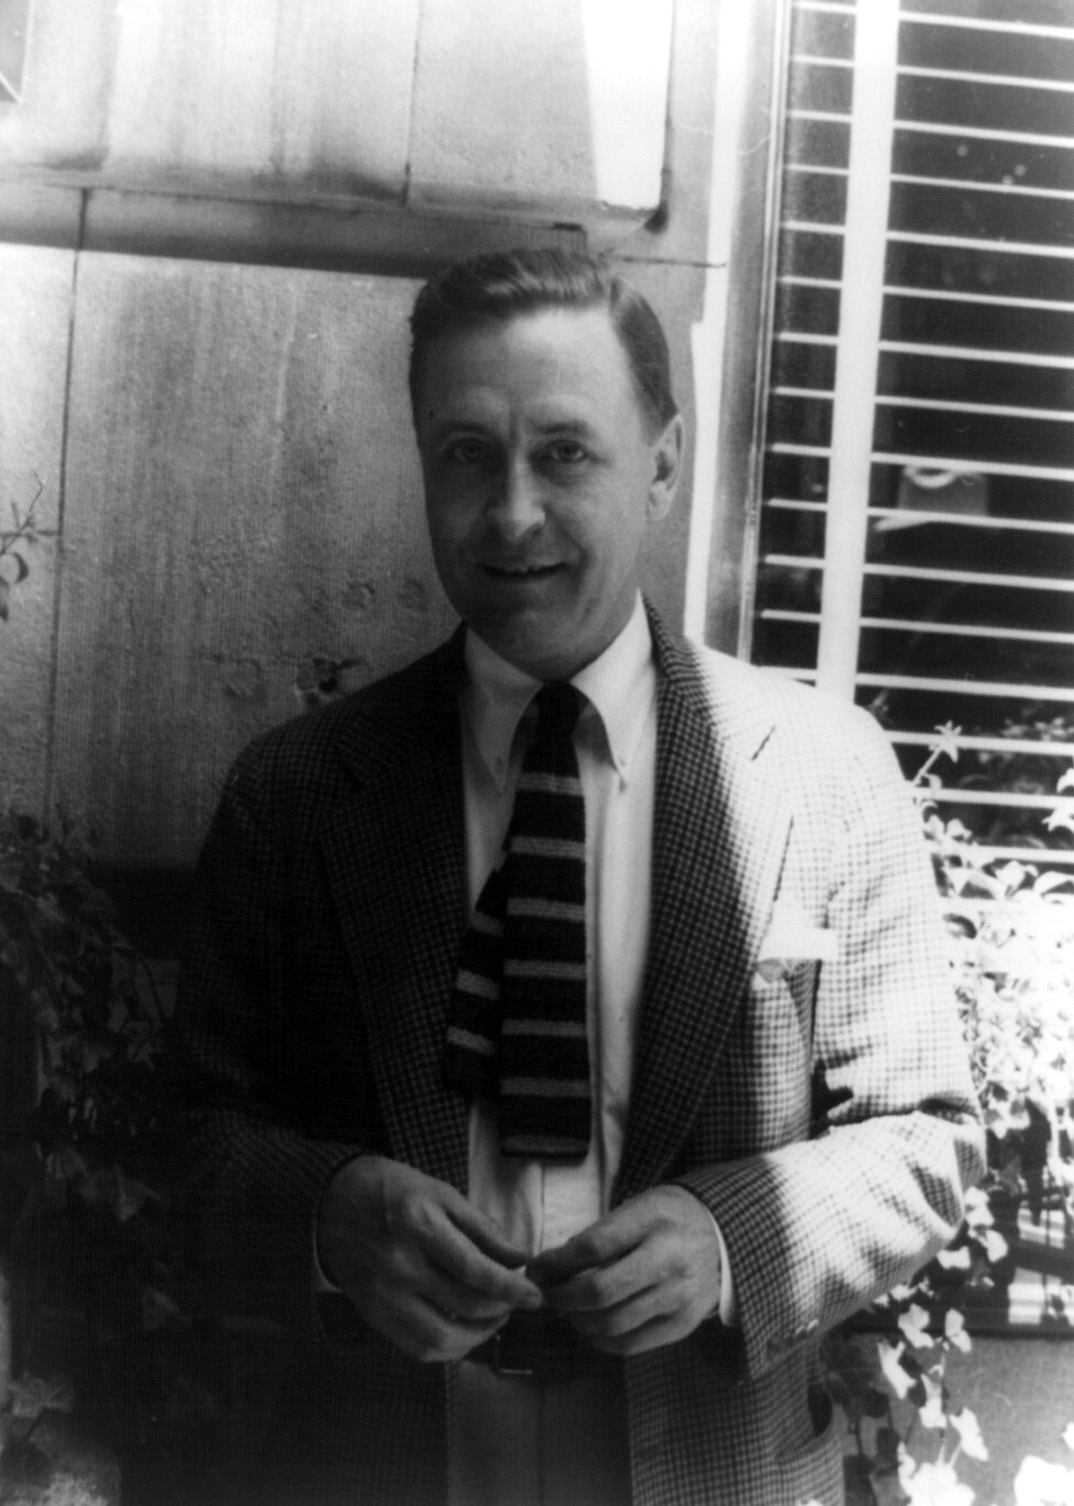 essay on the great gatsby by f. scott fitzgerald The great gatsby essays explore different themes of the novel the great gatsby by f scott fitzgerald is considered to be one of the great works of the.